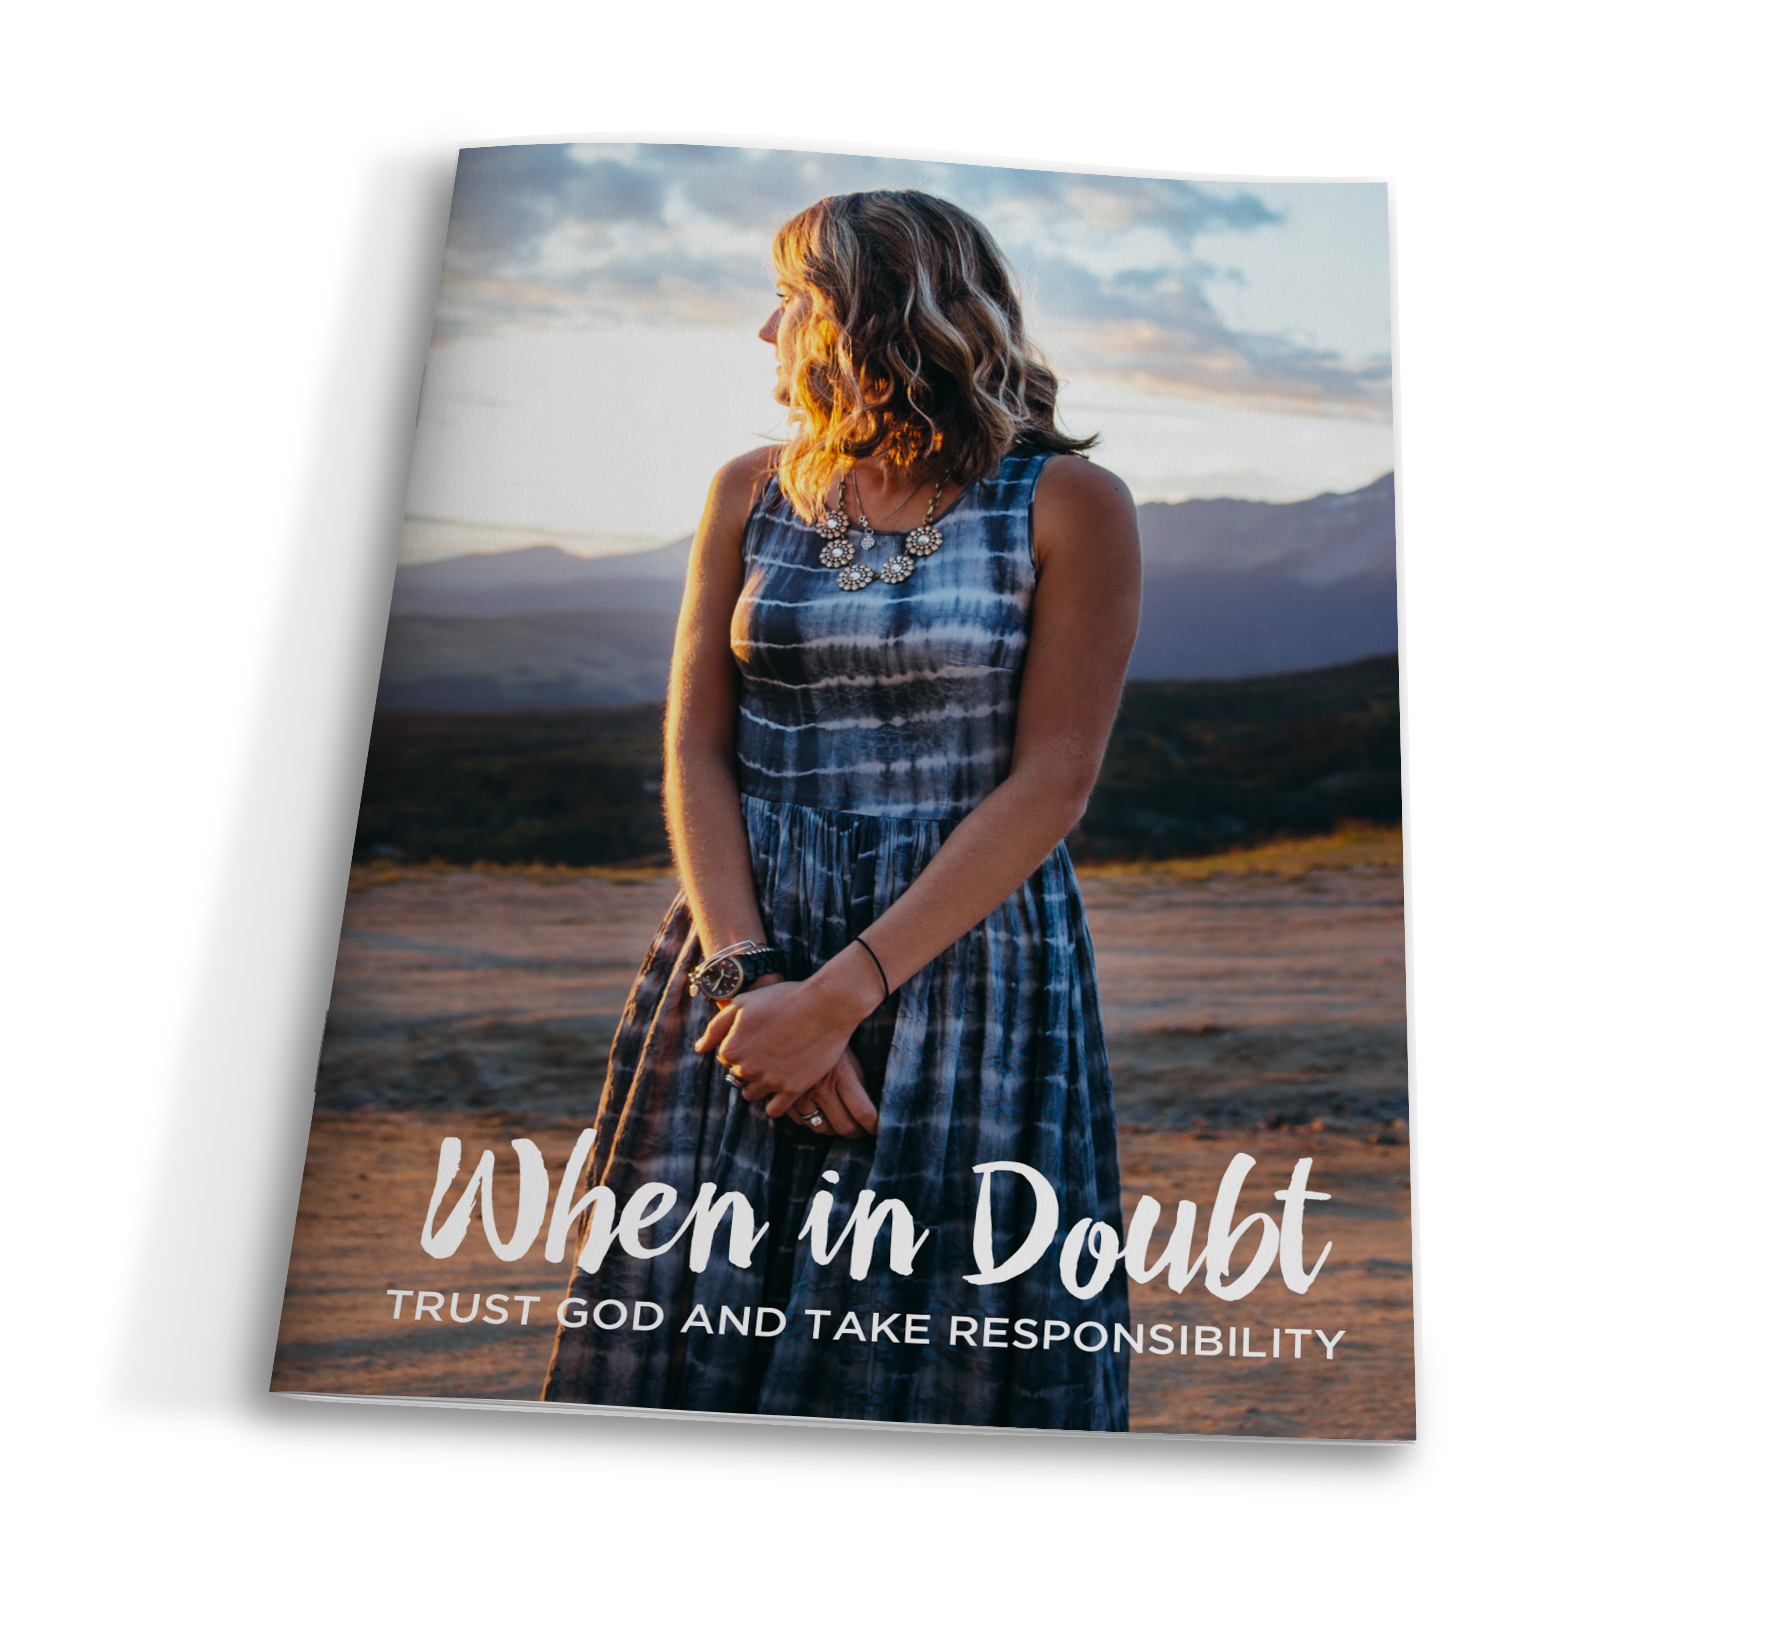 When in Doubt: Trust God and Take Responsibility